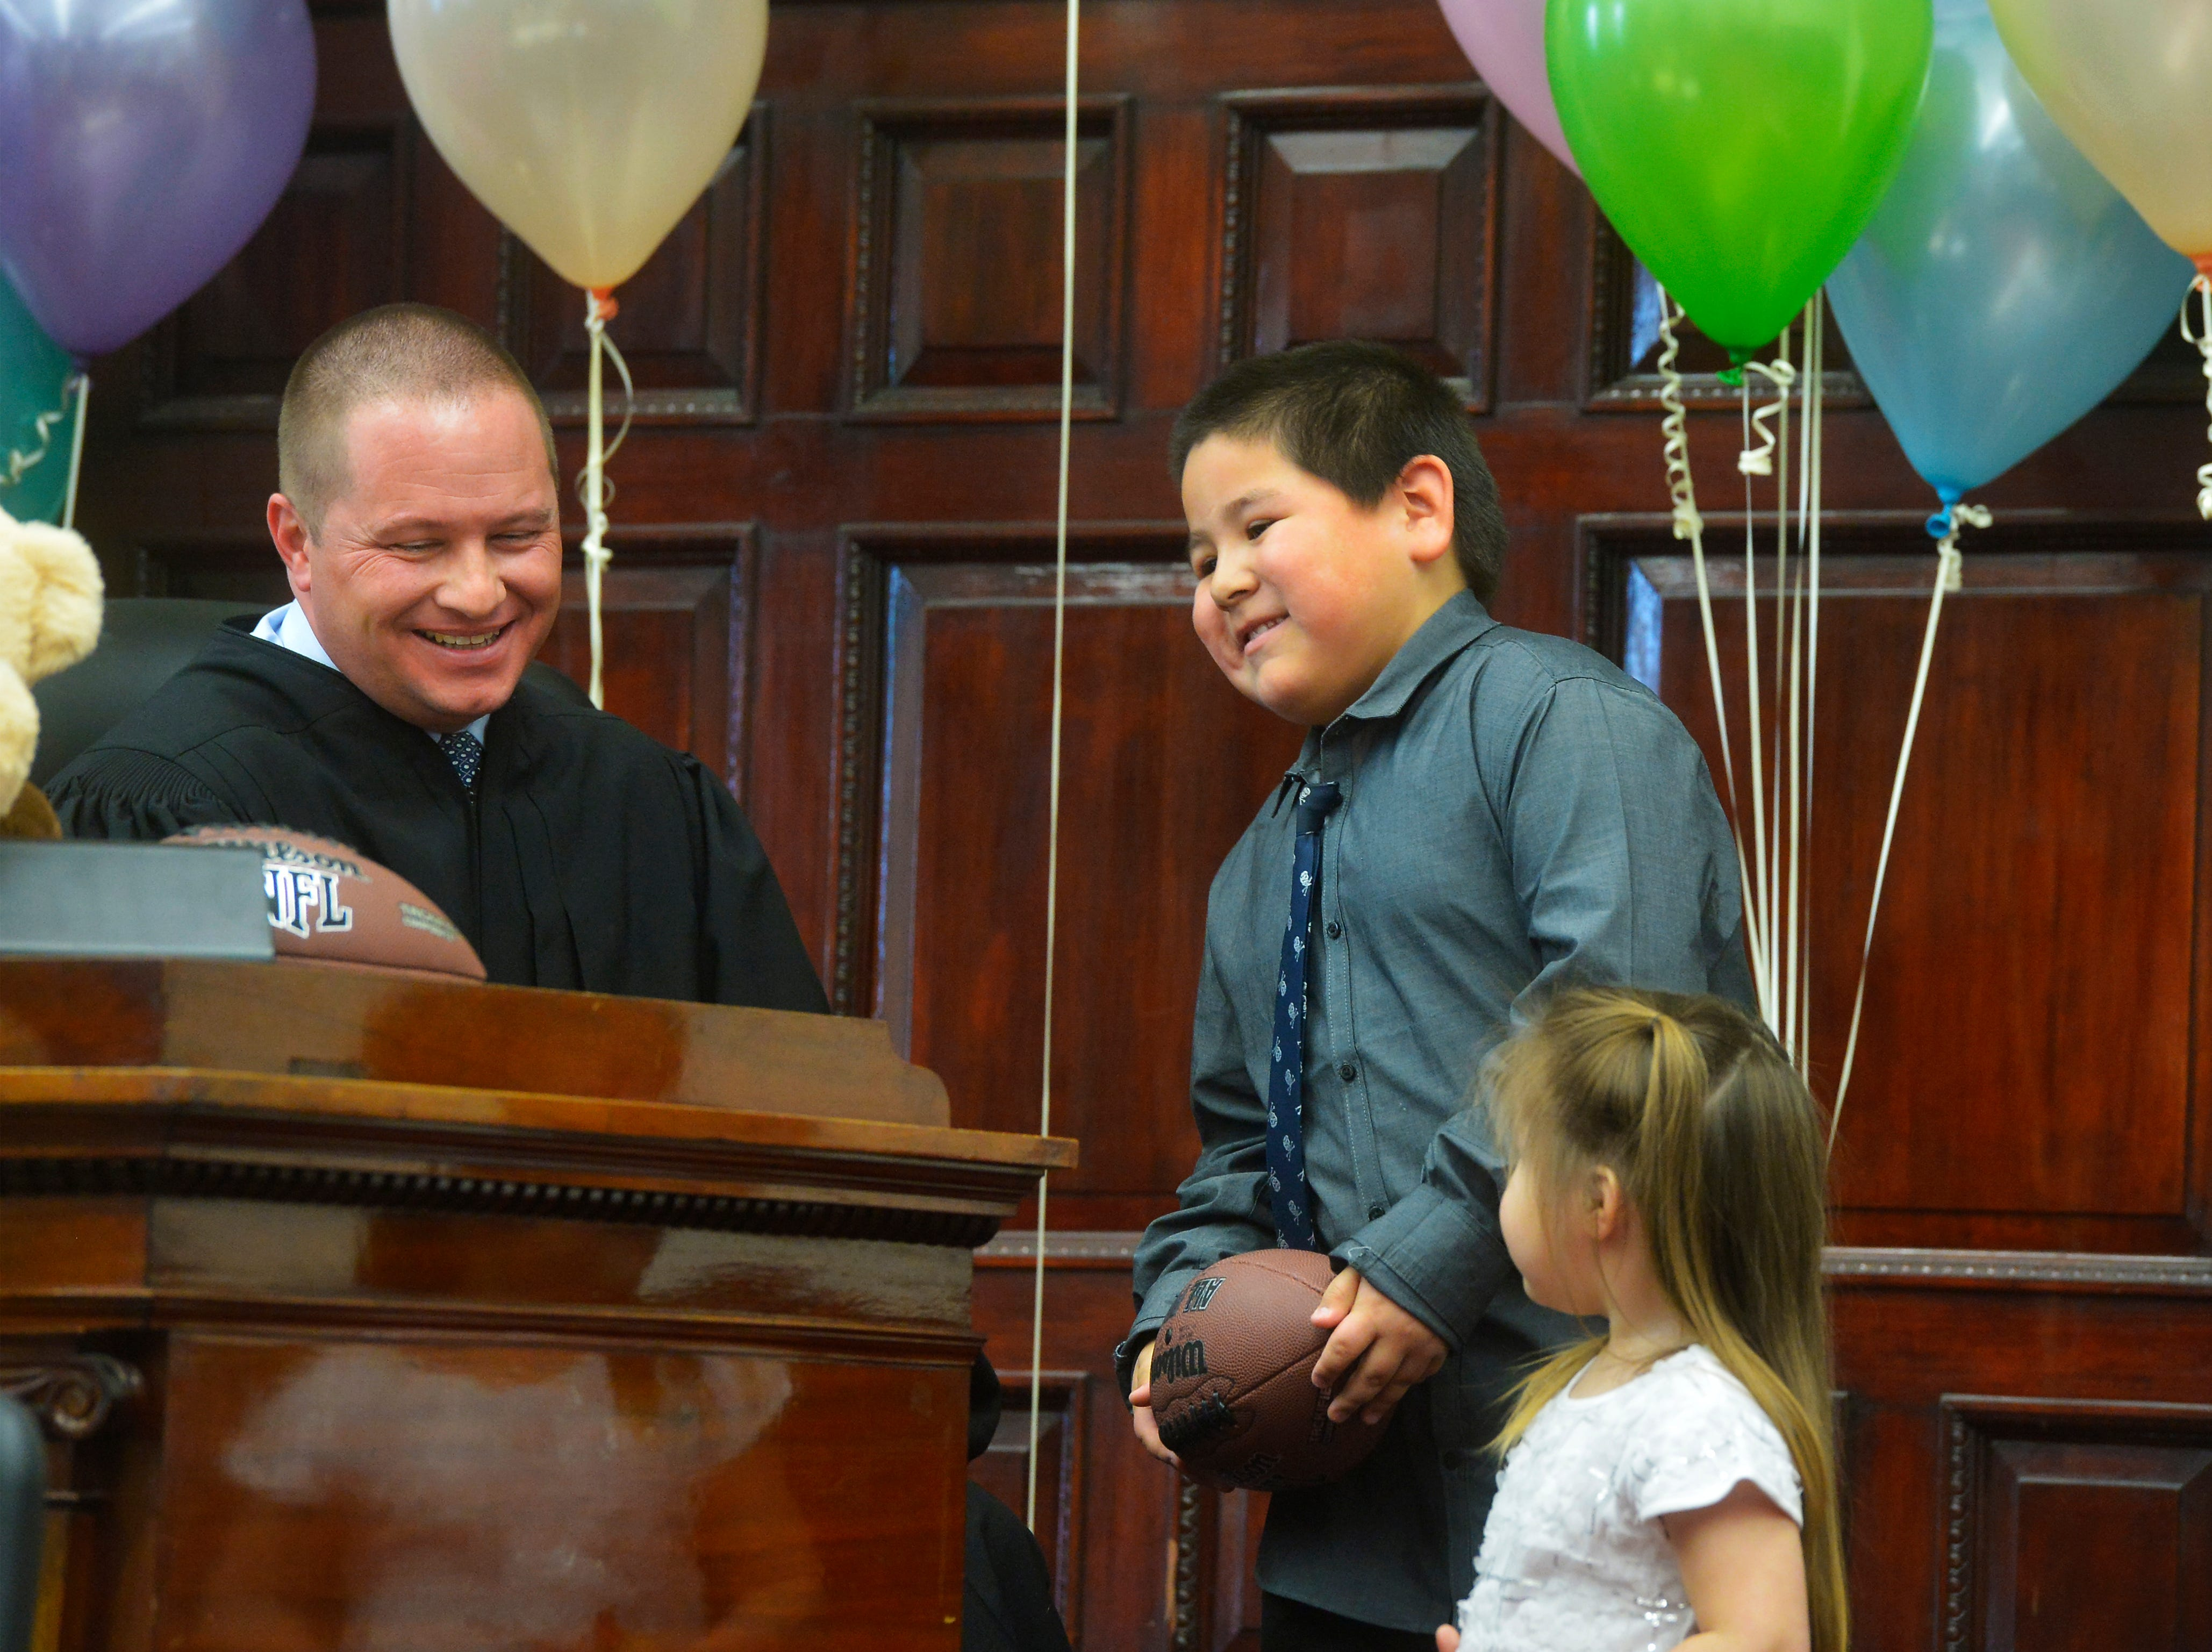 Anthony Morsette-Nava, age 7, and his sister Lexi, age 3, visit with Judge Greg Pinski at the judge's bench after he finalized their adoption on Friday afternoon in the Cascade County Courthouse